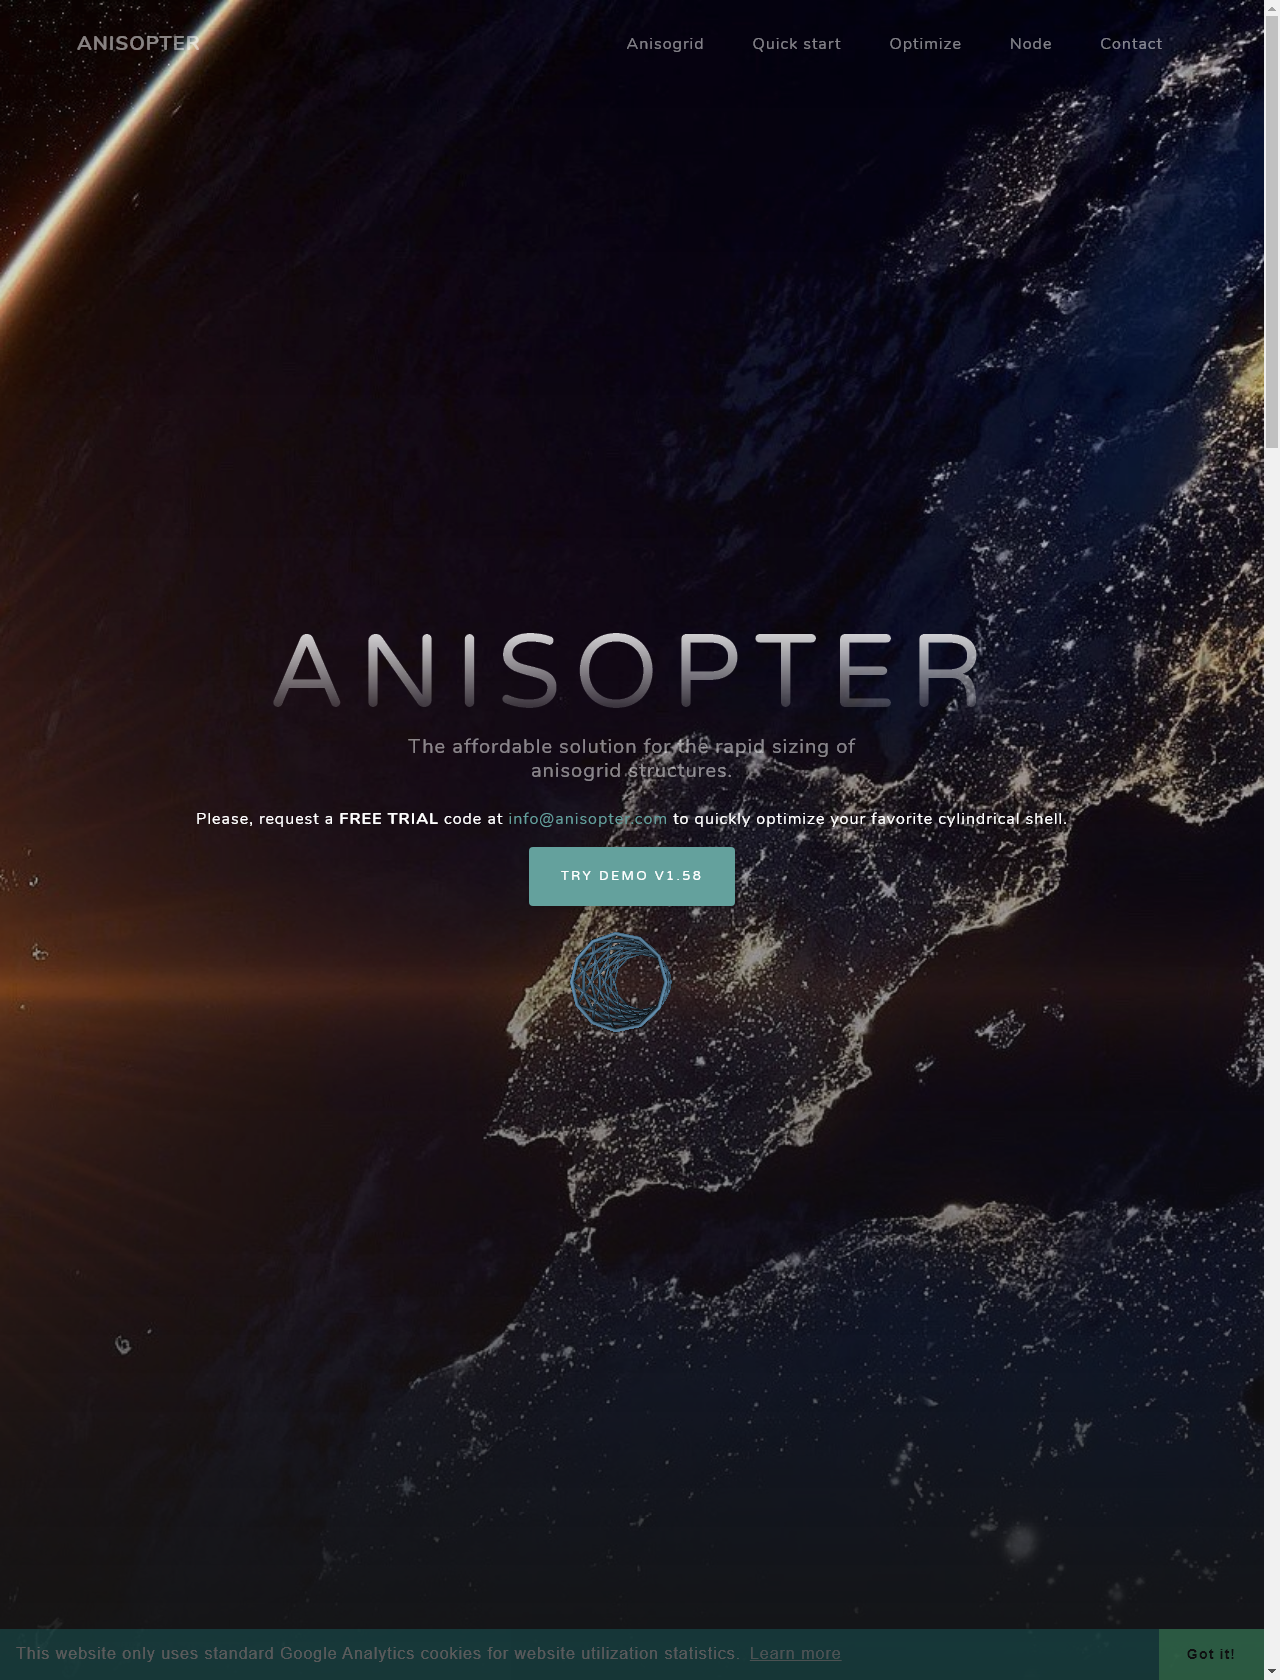 Screenshot Desktop - https://anisopter.com/